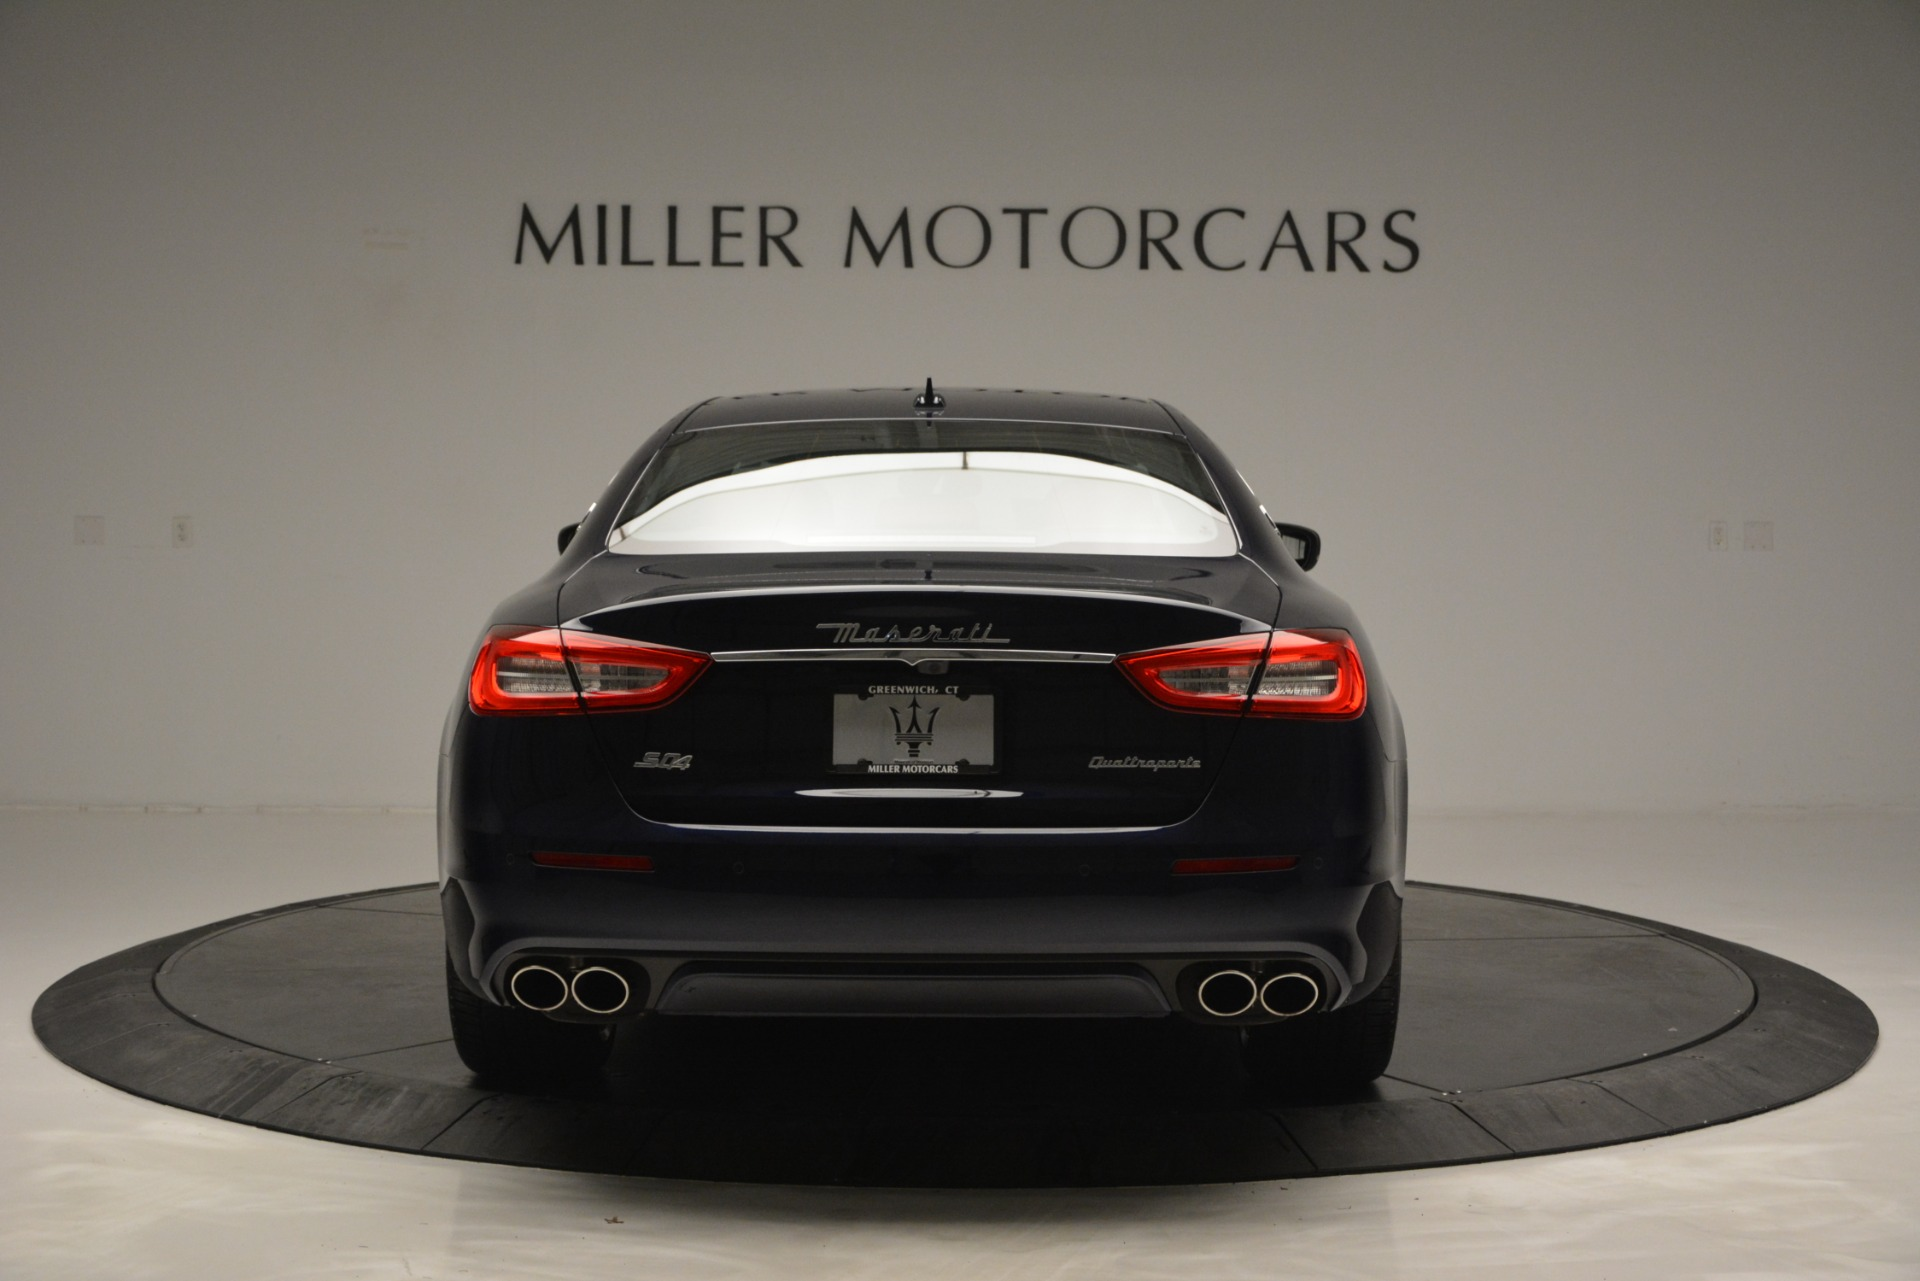 New 2019 Maserati Quattroporte S Q4 GranLusso For Sale In Greenwich, CT 2620_p6